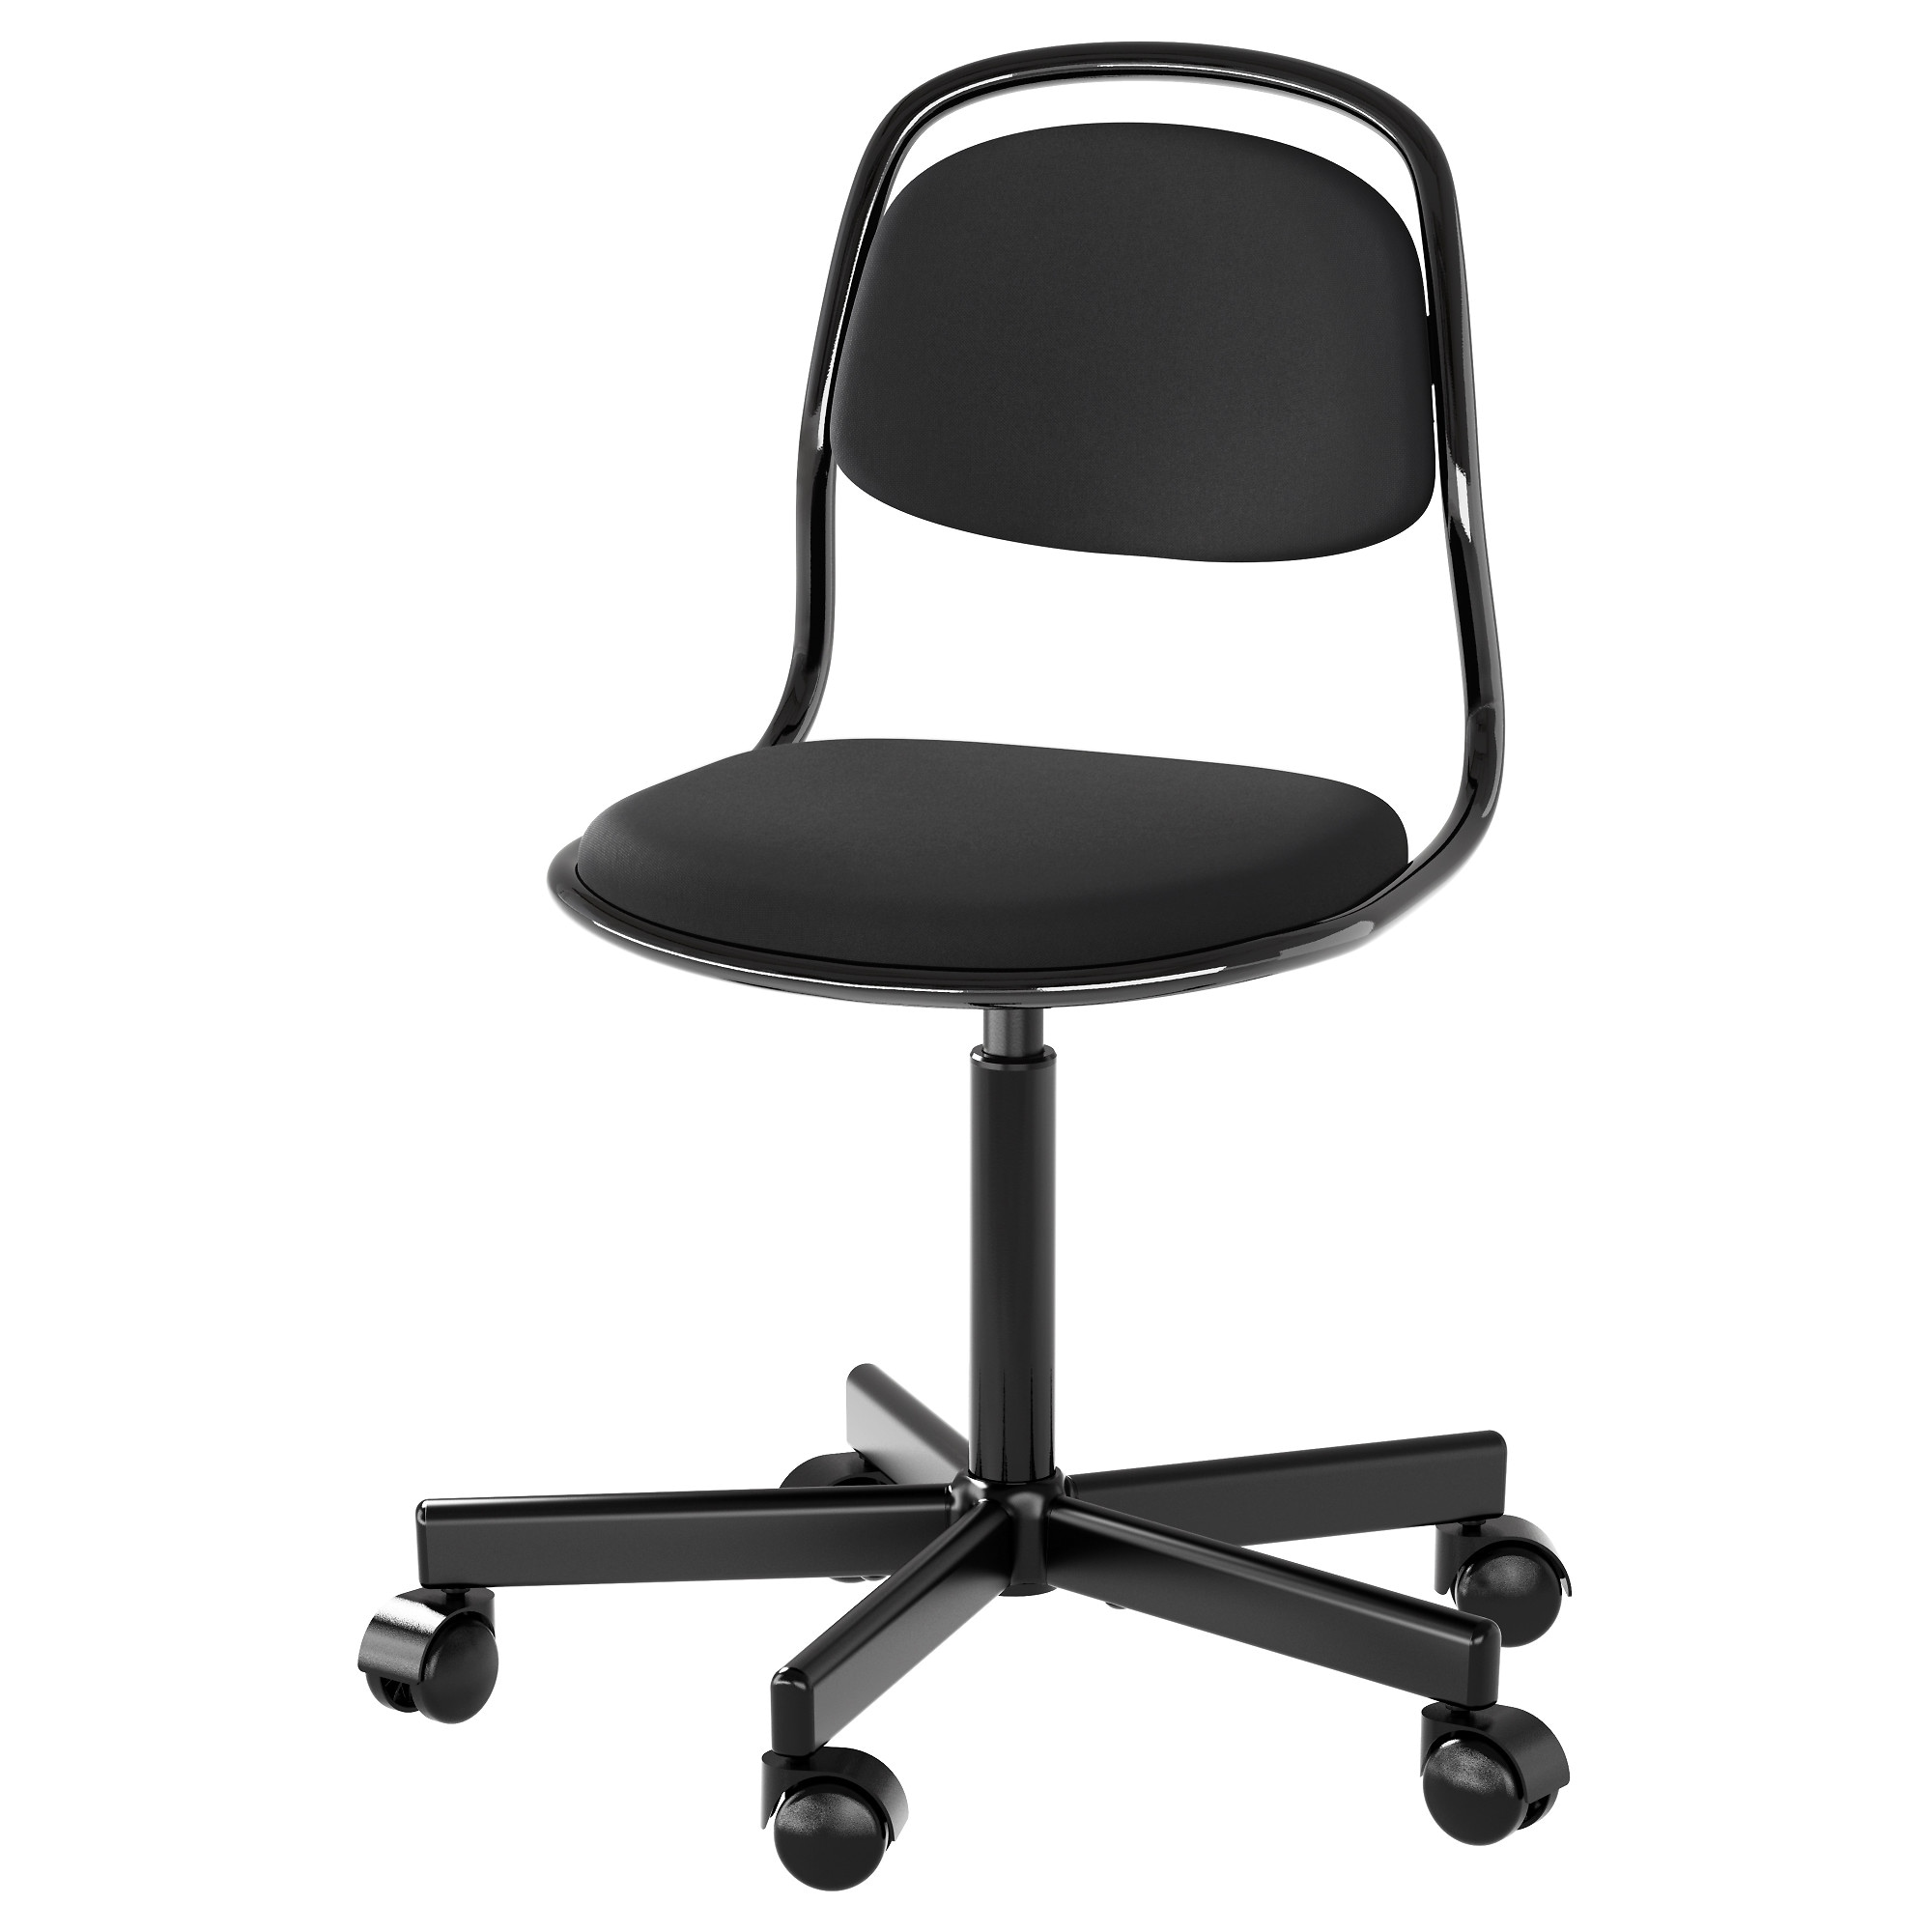 Black and white office chair -  Rfj Ll Junior Chair Black Vissle Black Tested For 243 Lb Width 20